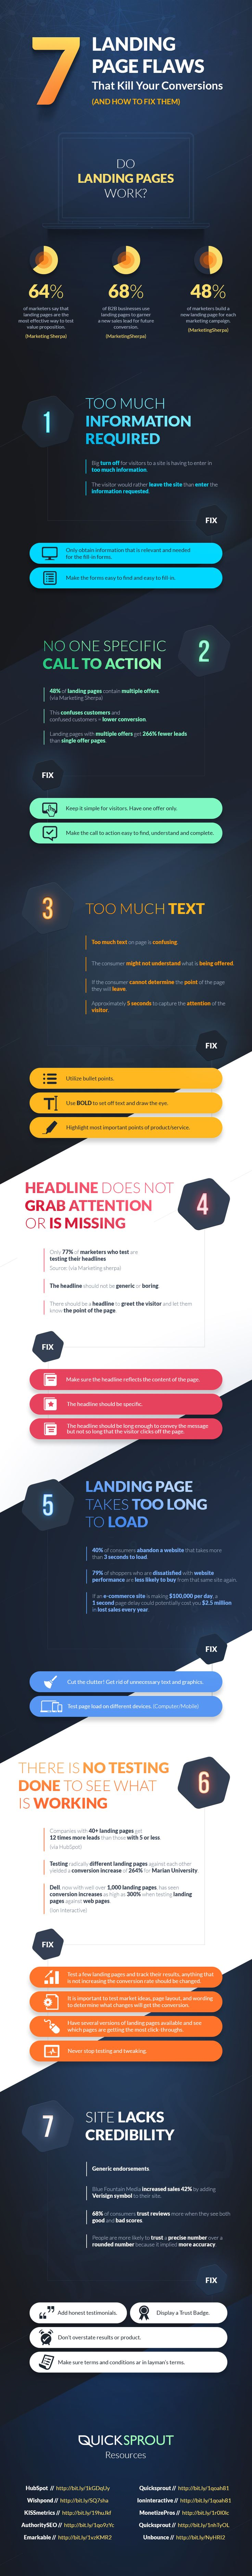 Learn how to increase your landing page convertion with this infograpgic that shows you 7 Landing Page Flaws That Kill Your Conversions (and How to Fix Them)  http://www.entrepreneursclass.com/7-landing-page-flaws-kill-conversions-fix/